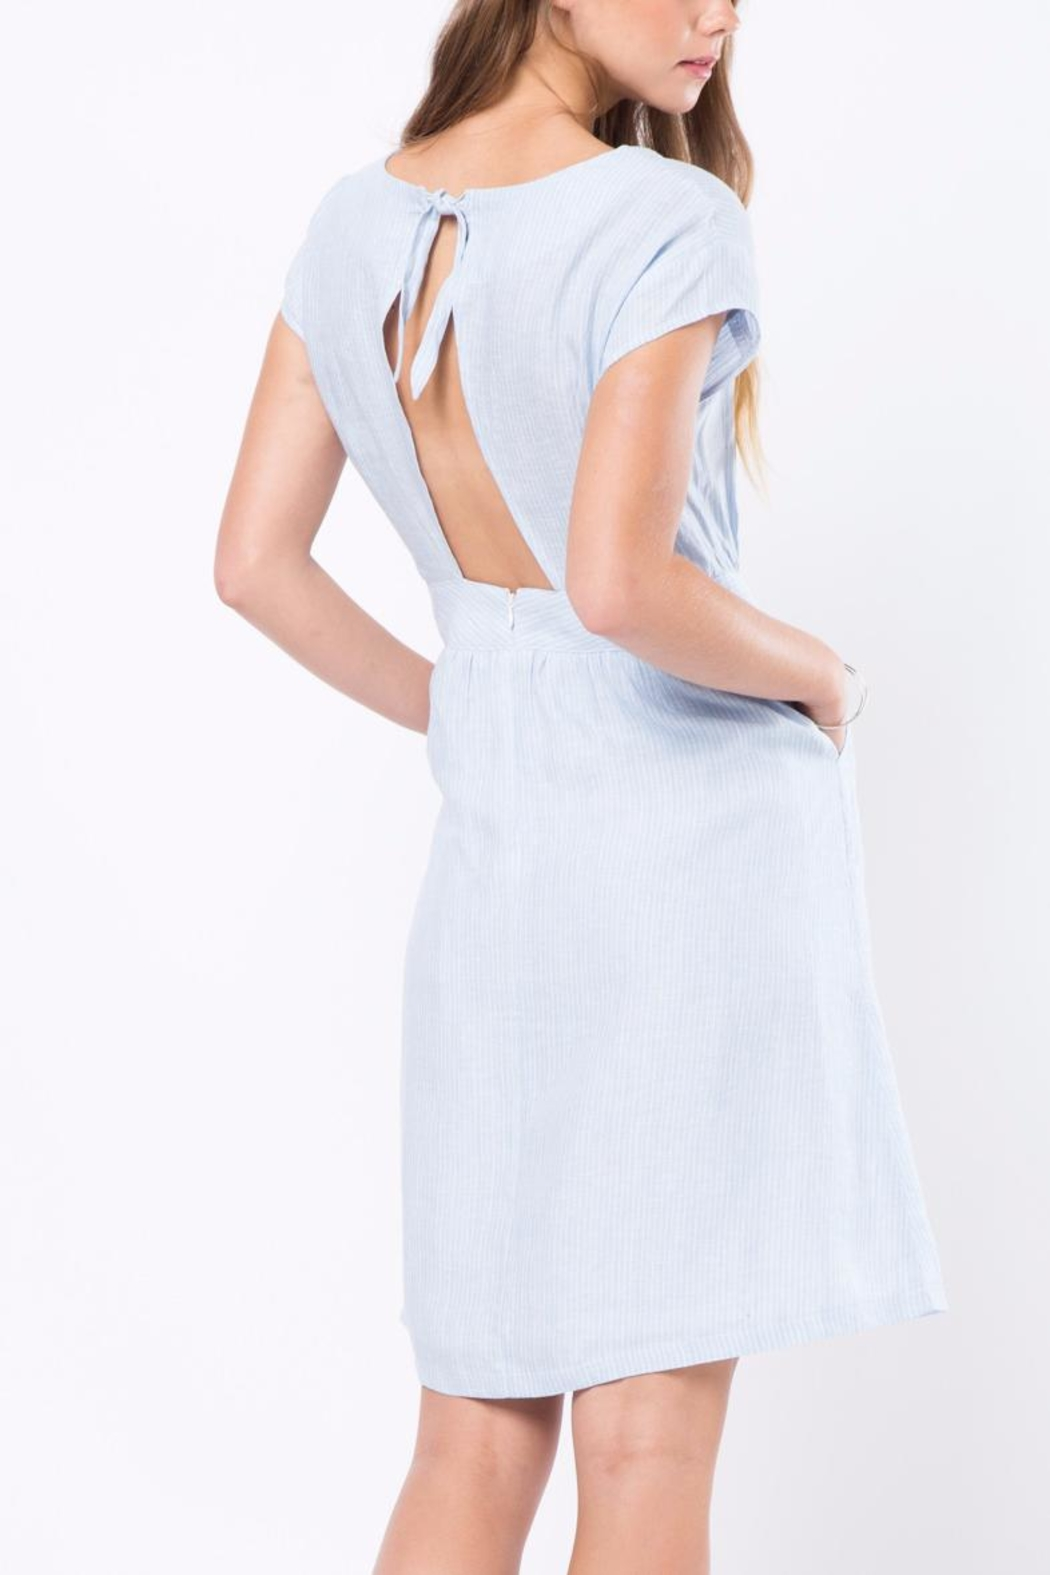 Movint Simple Flowy Dress - Side Cropped Image